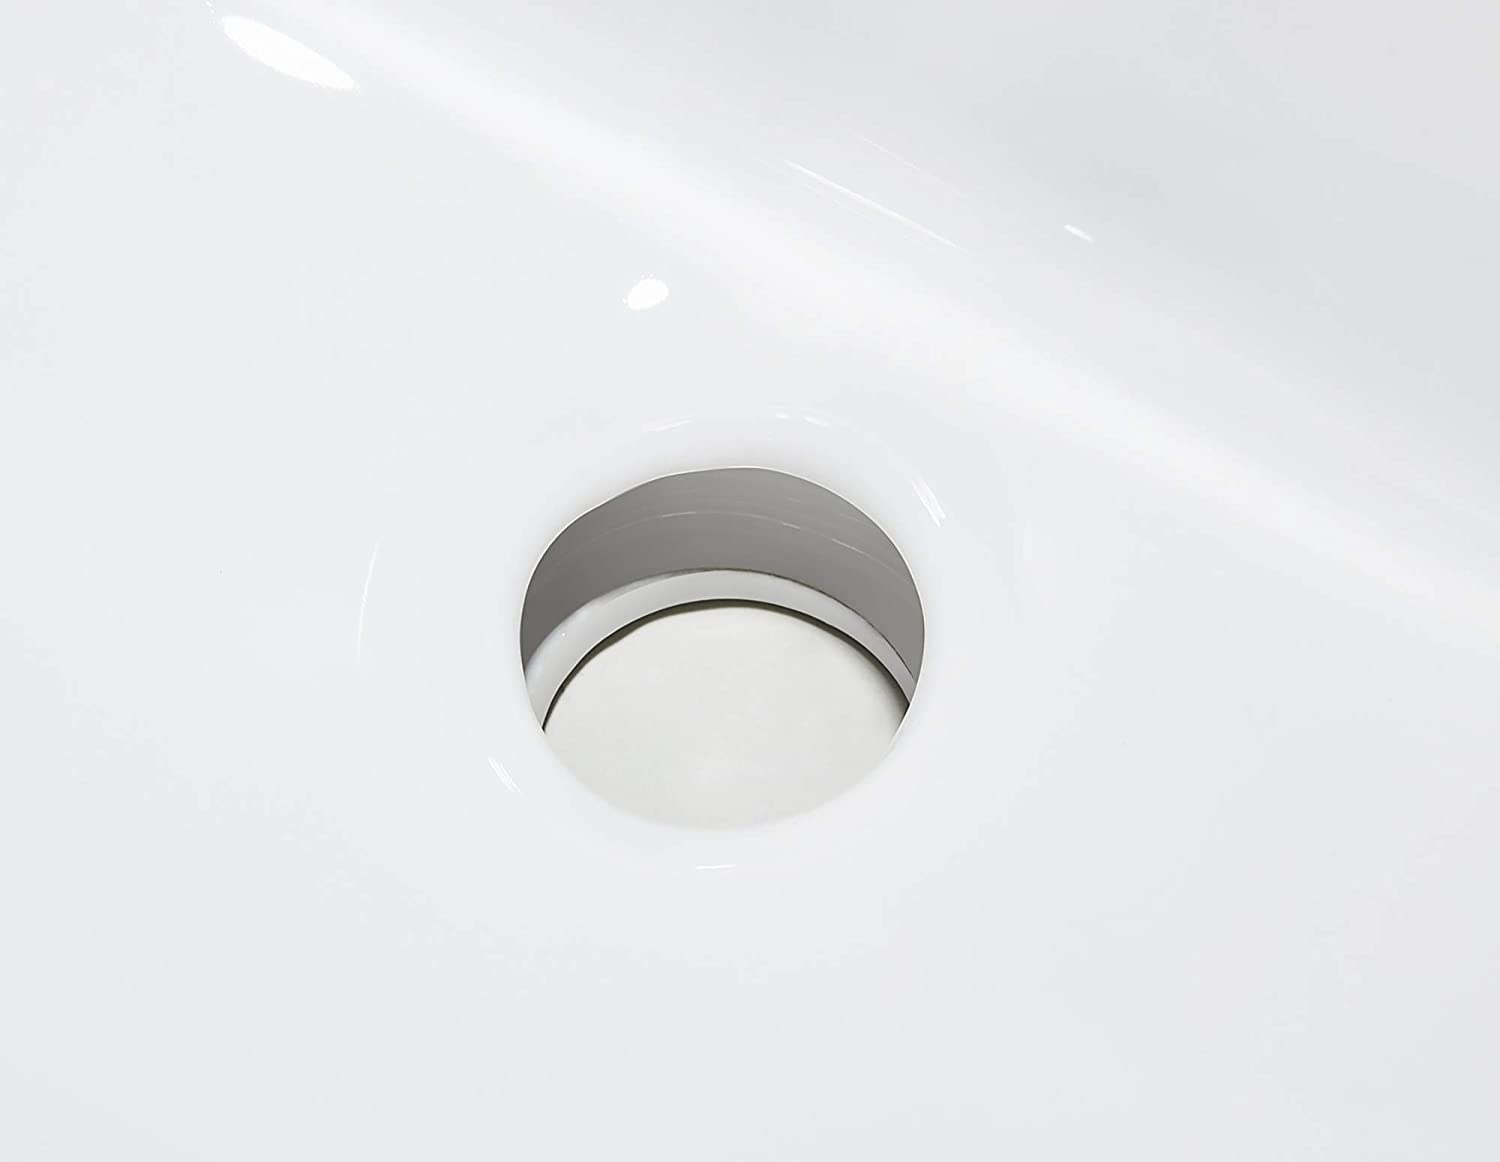 Big Sale Ce Home 21 Modern White Ceramic Basin Rectangular Vessel Sink Above Counter Mounting Drop In Bathroom Countertop Basin With Single Faucet Hole For Lavatory Vanity Cabinet Kitchen Bath Fixtures